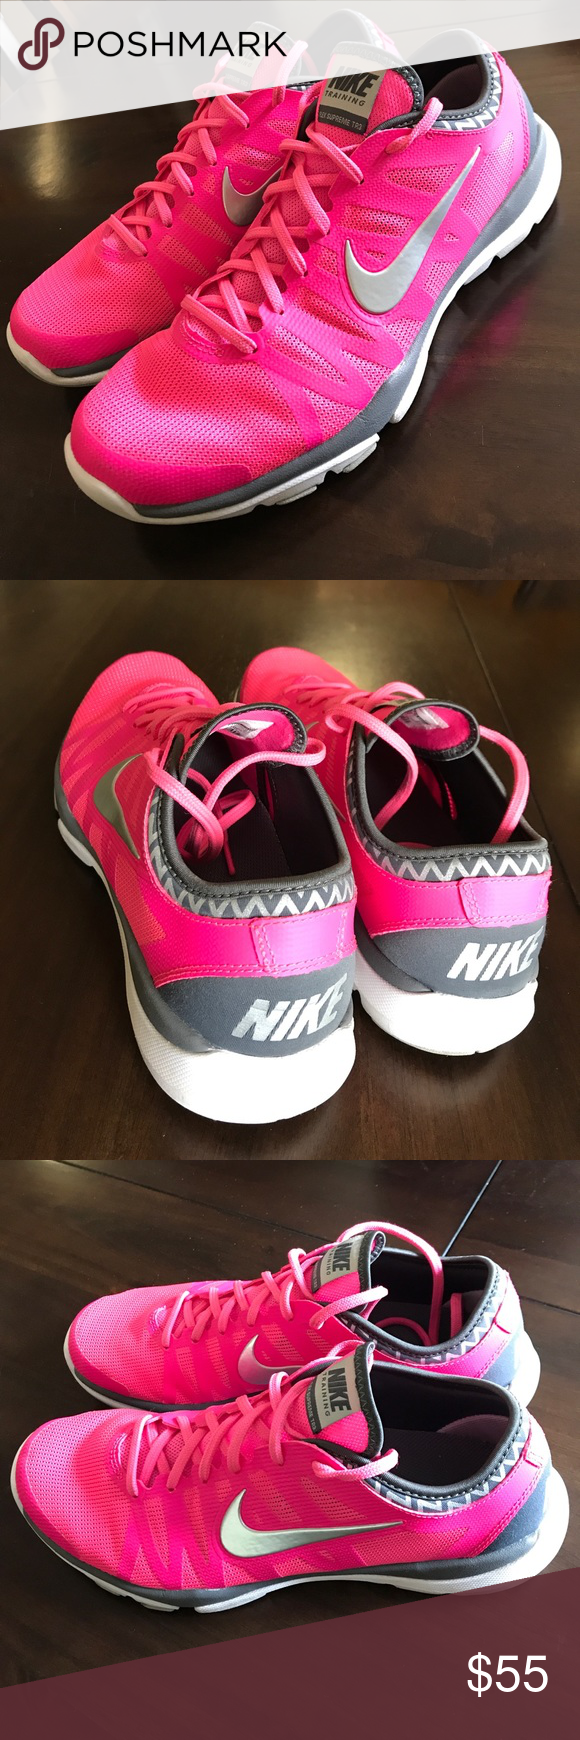 NIKE Flex Supreme Tr3 training sneakers Like New. Training sneakers by Nike in pink. Perfect for running, working out or just causal with leggings. Worn a few times, with little sign of wear! Nike Shoes Athletic Shoes